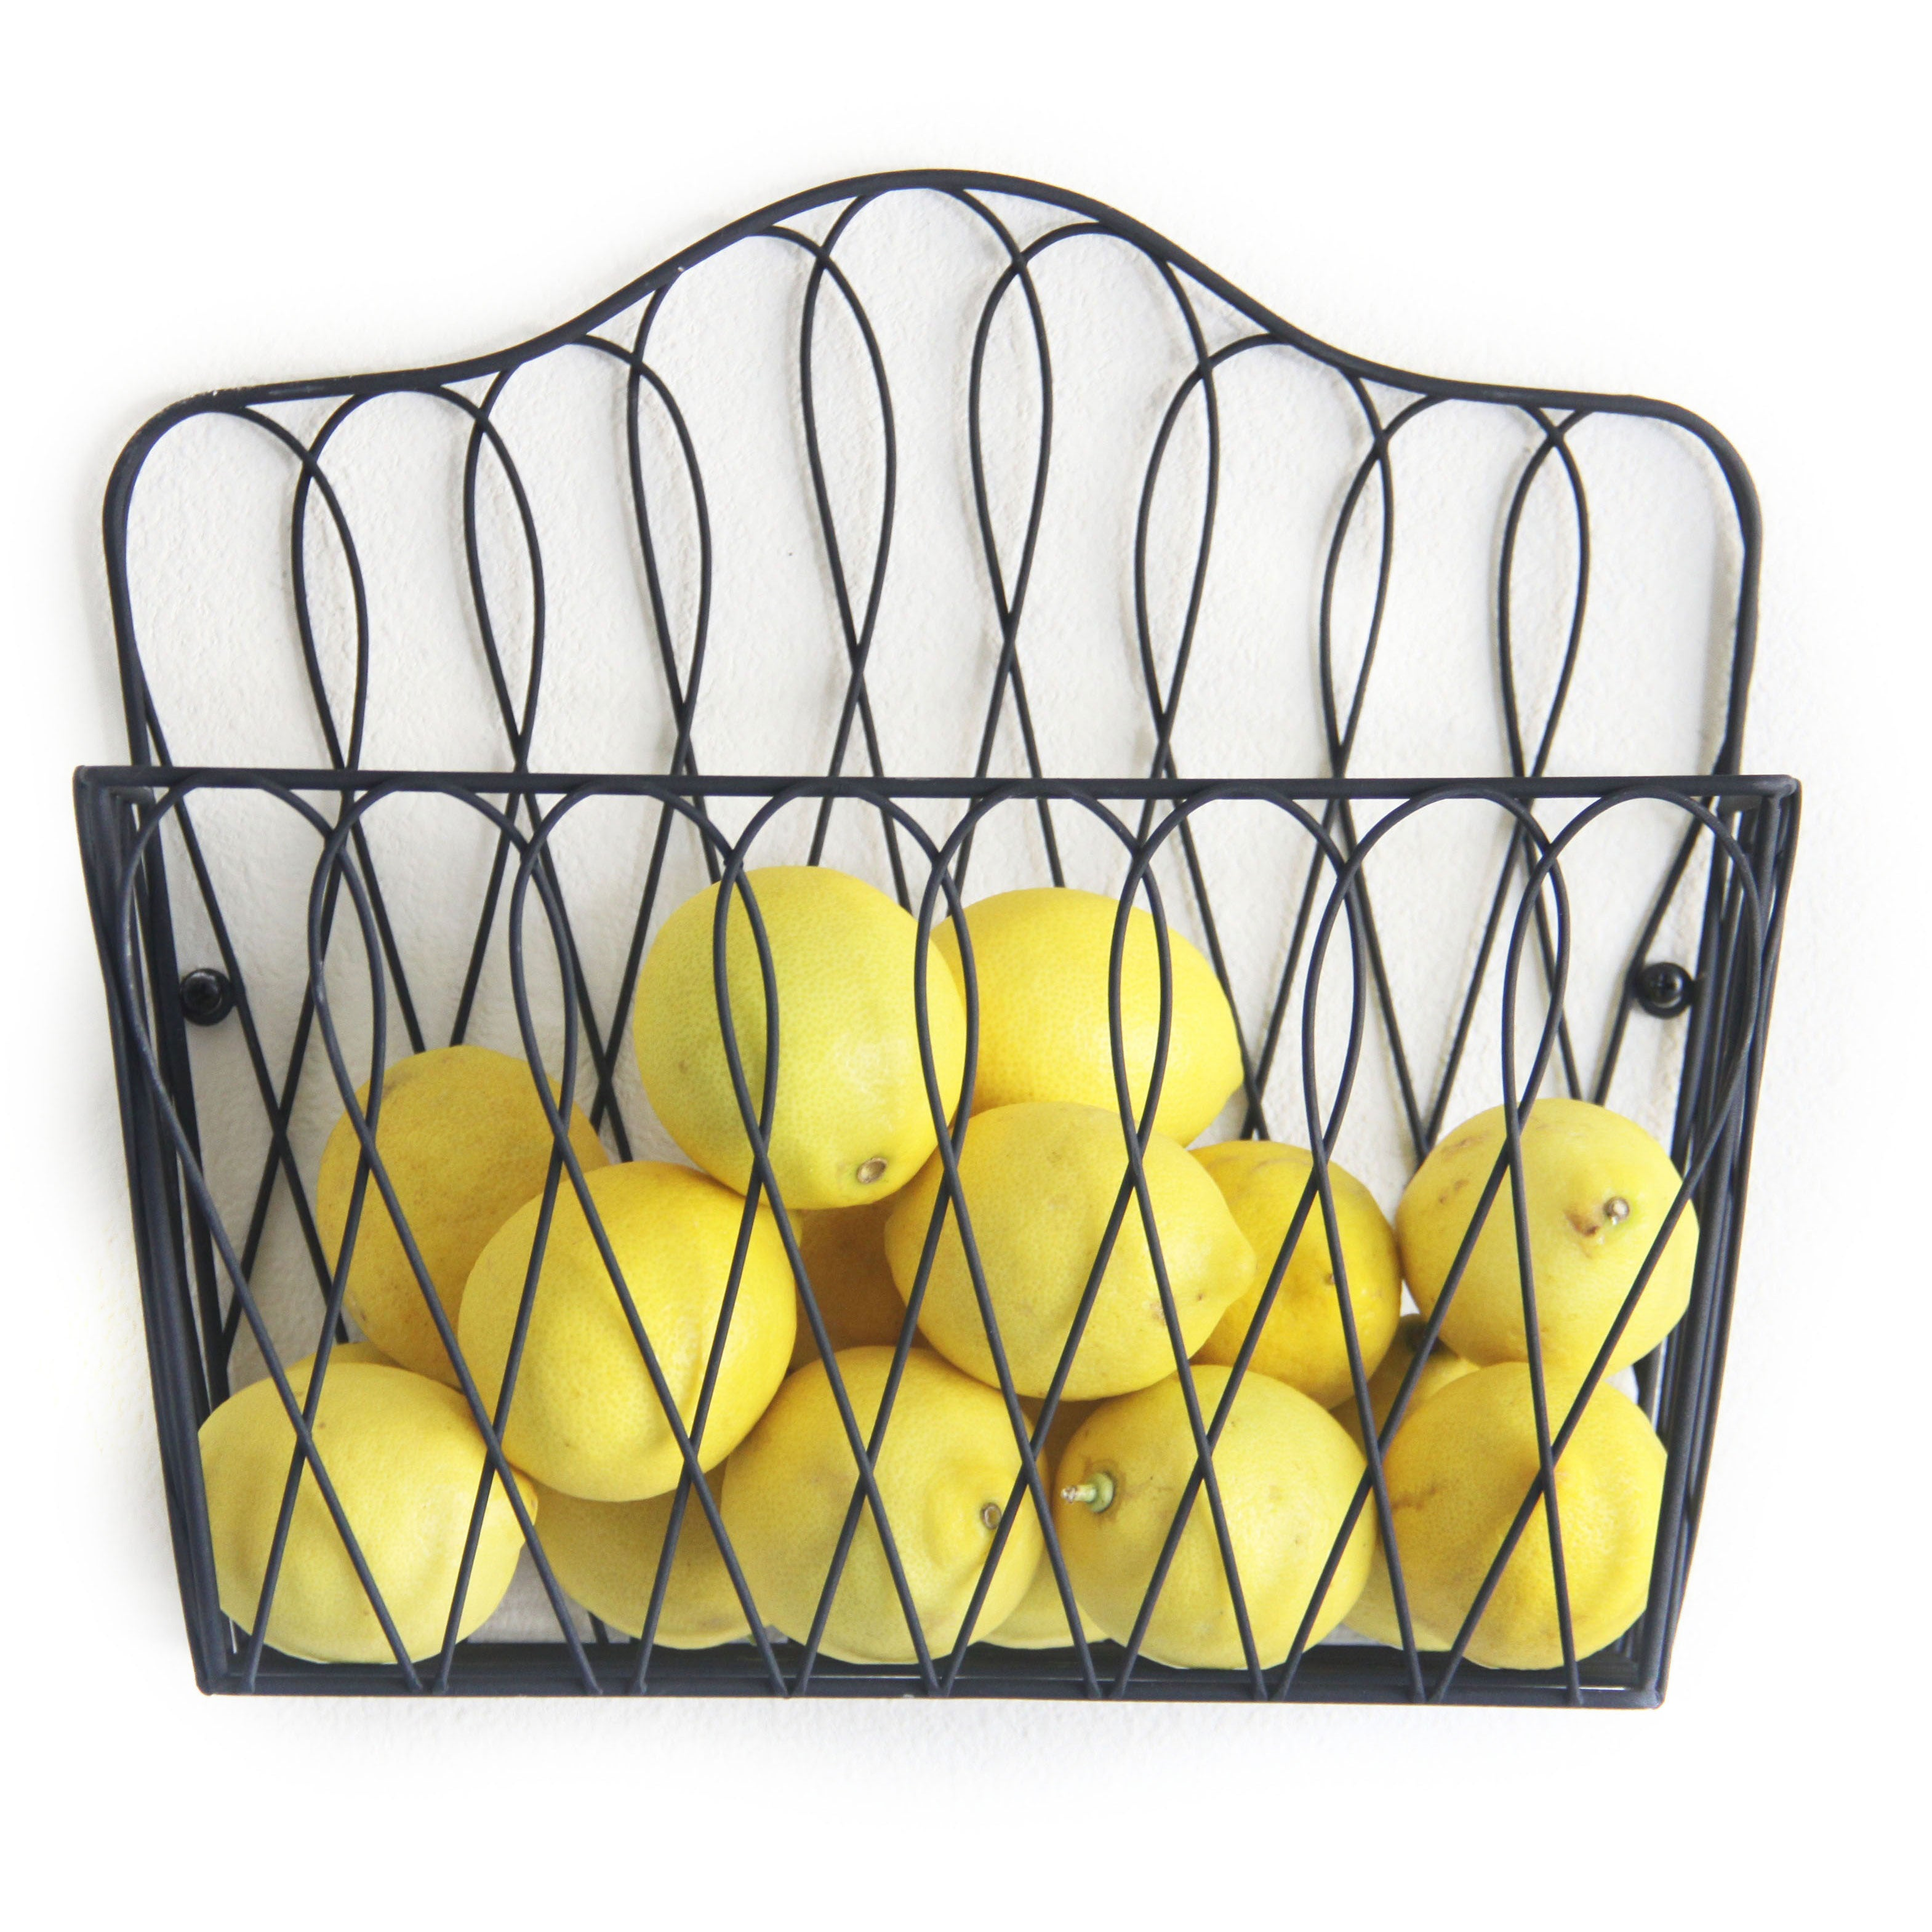 Wall-mounted Magazine Rack Fruit Basket (Wall Mount Magaz...